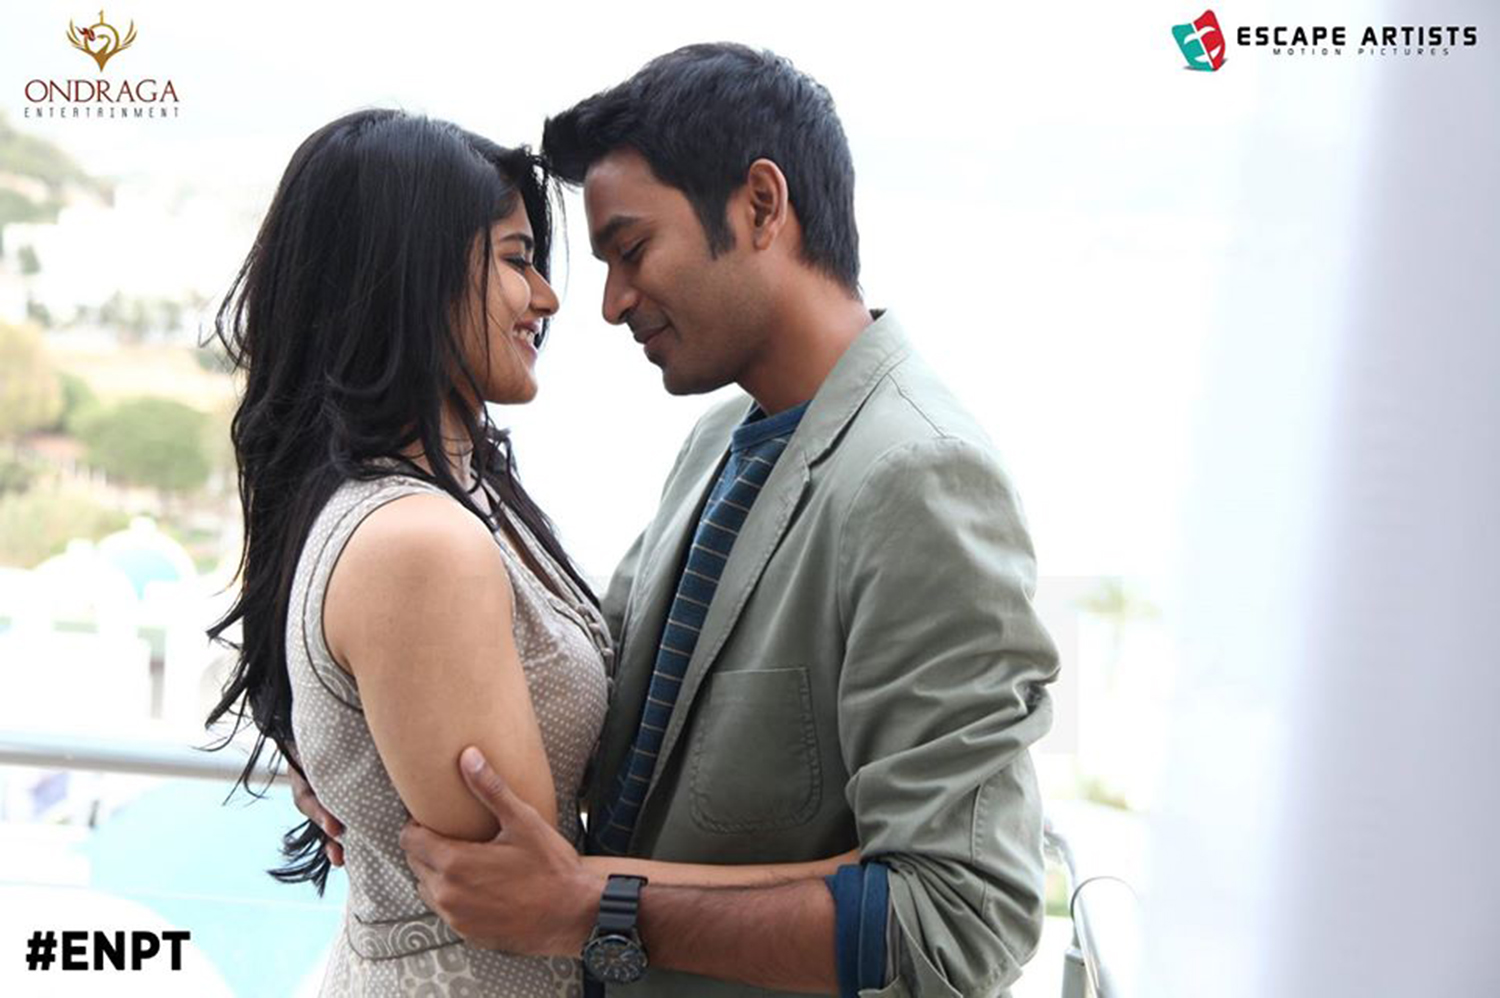 enai nokki paayum thotta review,enai nokki paayum thotta movie reviews,enai nokki paayum thotta ratings,enai nokki paayum thotta hit or flop,latest tamil news,enai nokki paayum thotta movie reports,dhanush latest news,dhanush latest movie,dhanush gautham menon movie report,gautham menon,gautham menon latest movie,gautham menon enai nokki paayum thotta review,sasikumar,megha aksh,dhanush megha akash enai nokki paayum thotta stills,enai nokki paayum thotta poster,enai nokki paayum thotta dhanush images